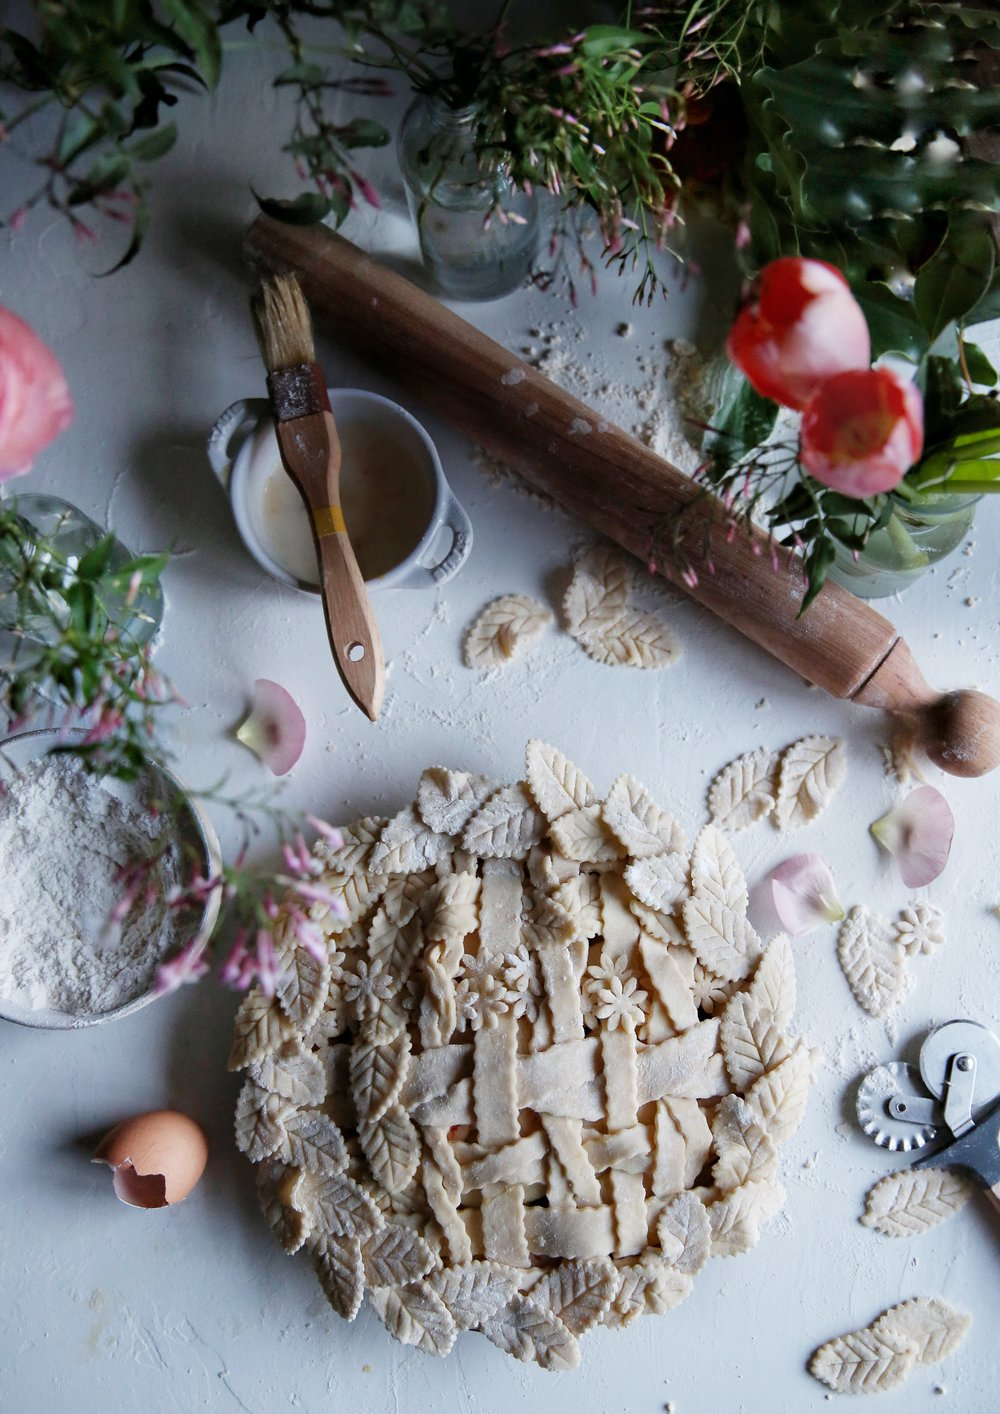 Apple and Blood Orange Garden Trellis Pie by Judy Kim | The Judy lab